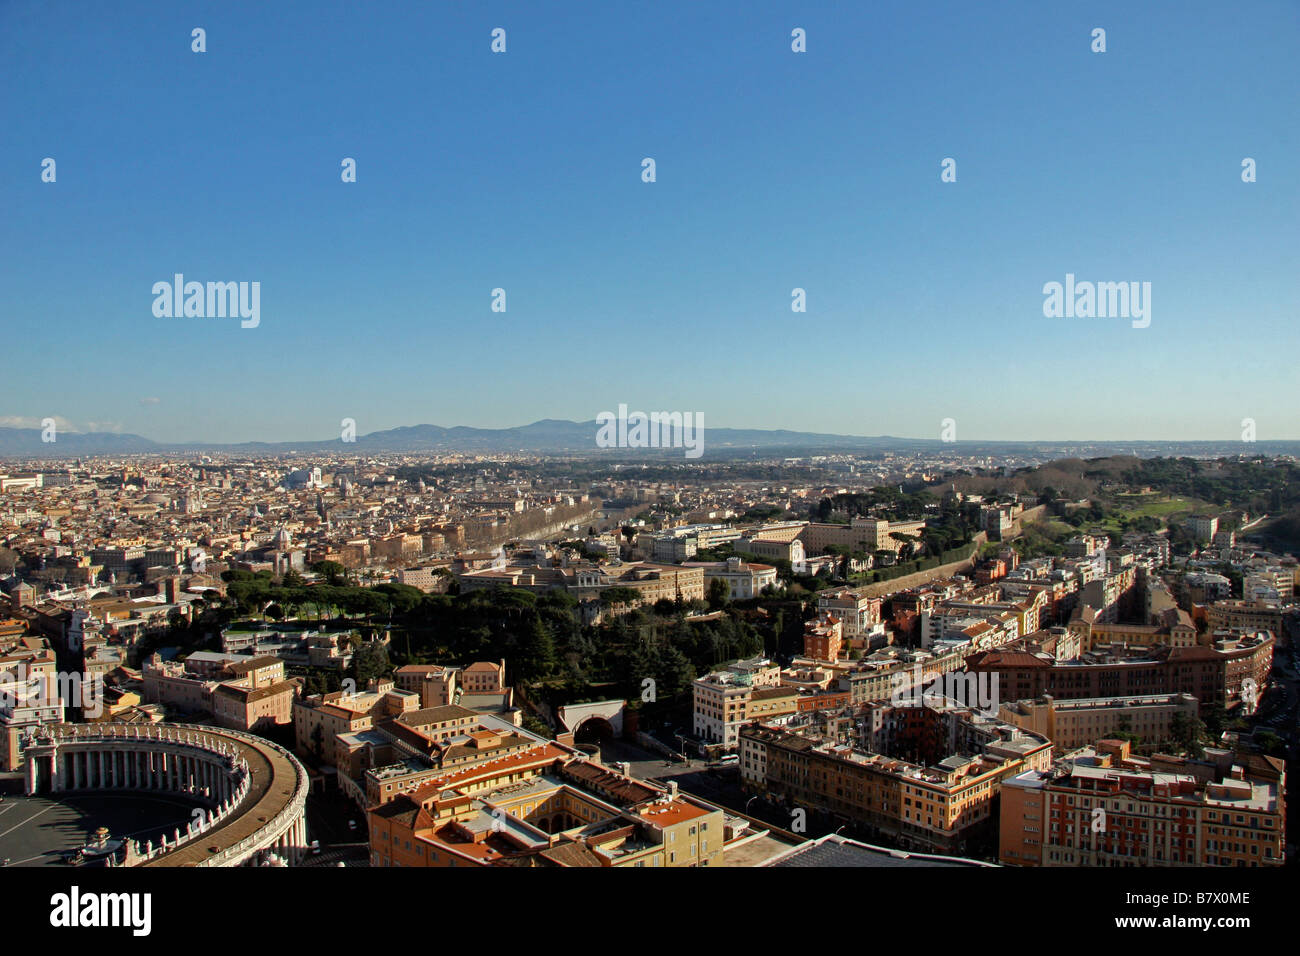 d156afbb6990e6 View from top of Vatican City museum